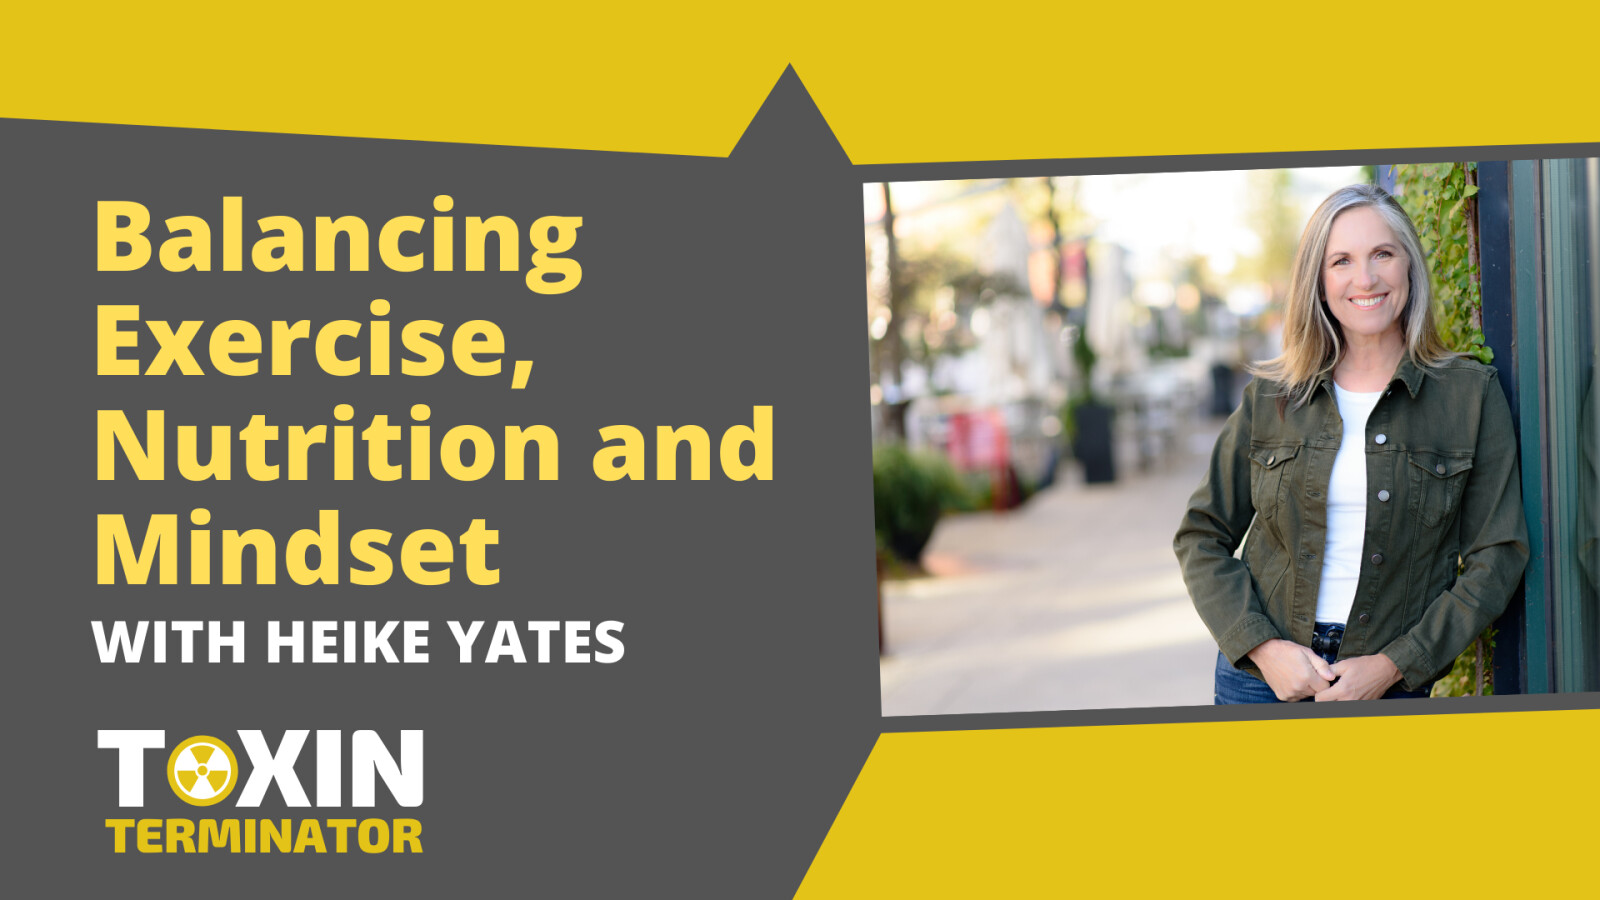 Balancing Exercise, Nutrition and Mindset with Heike Yates